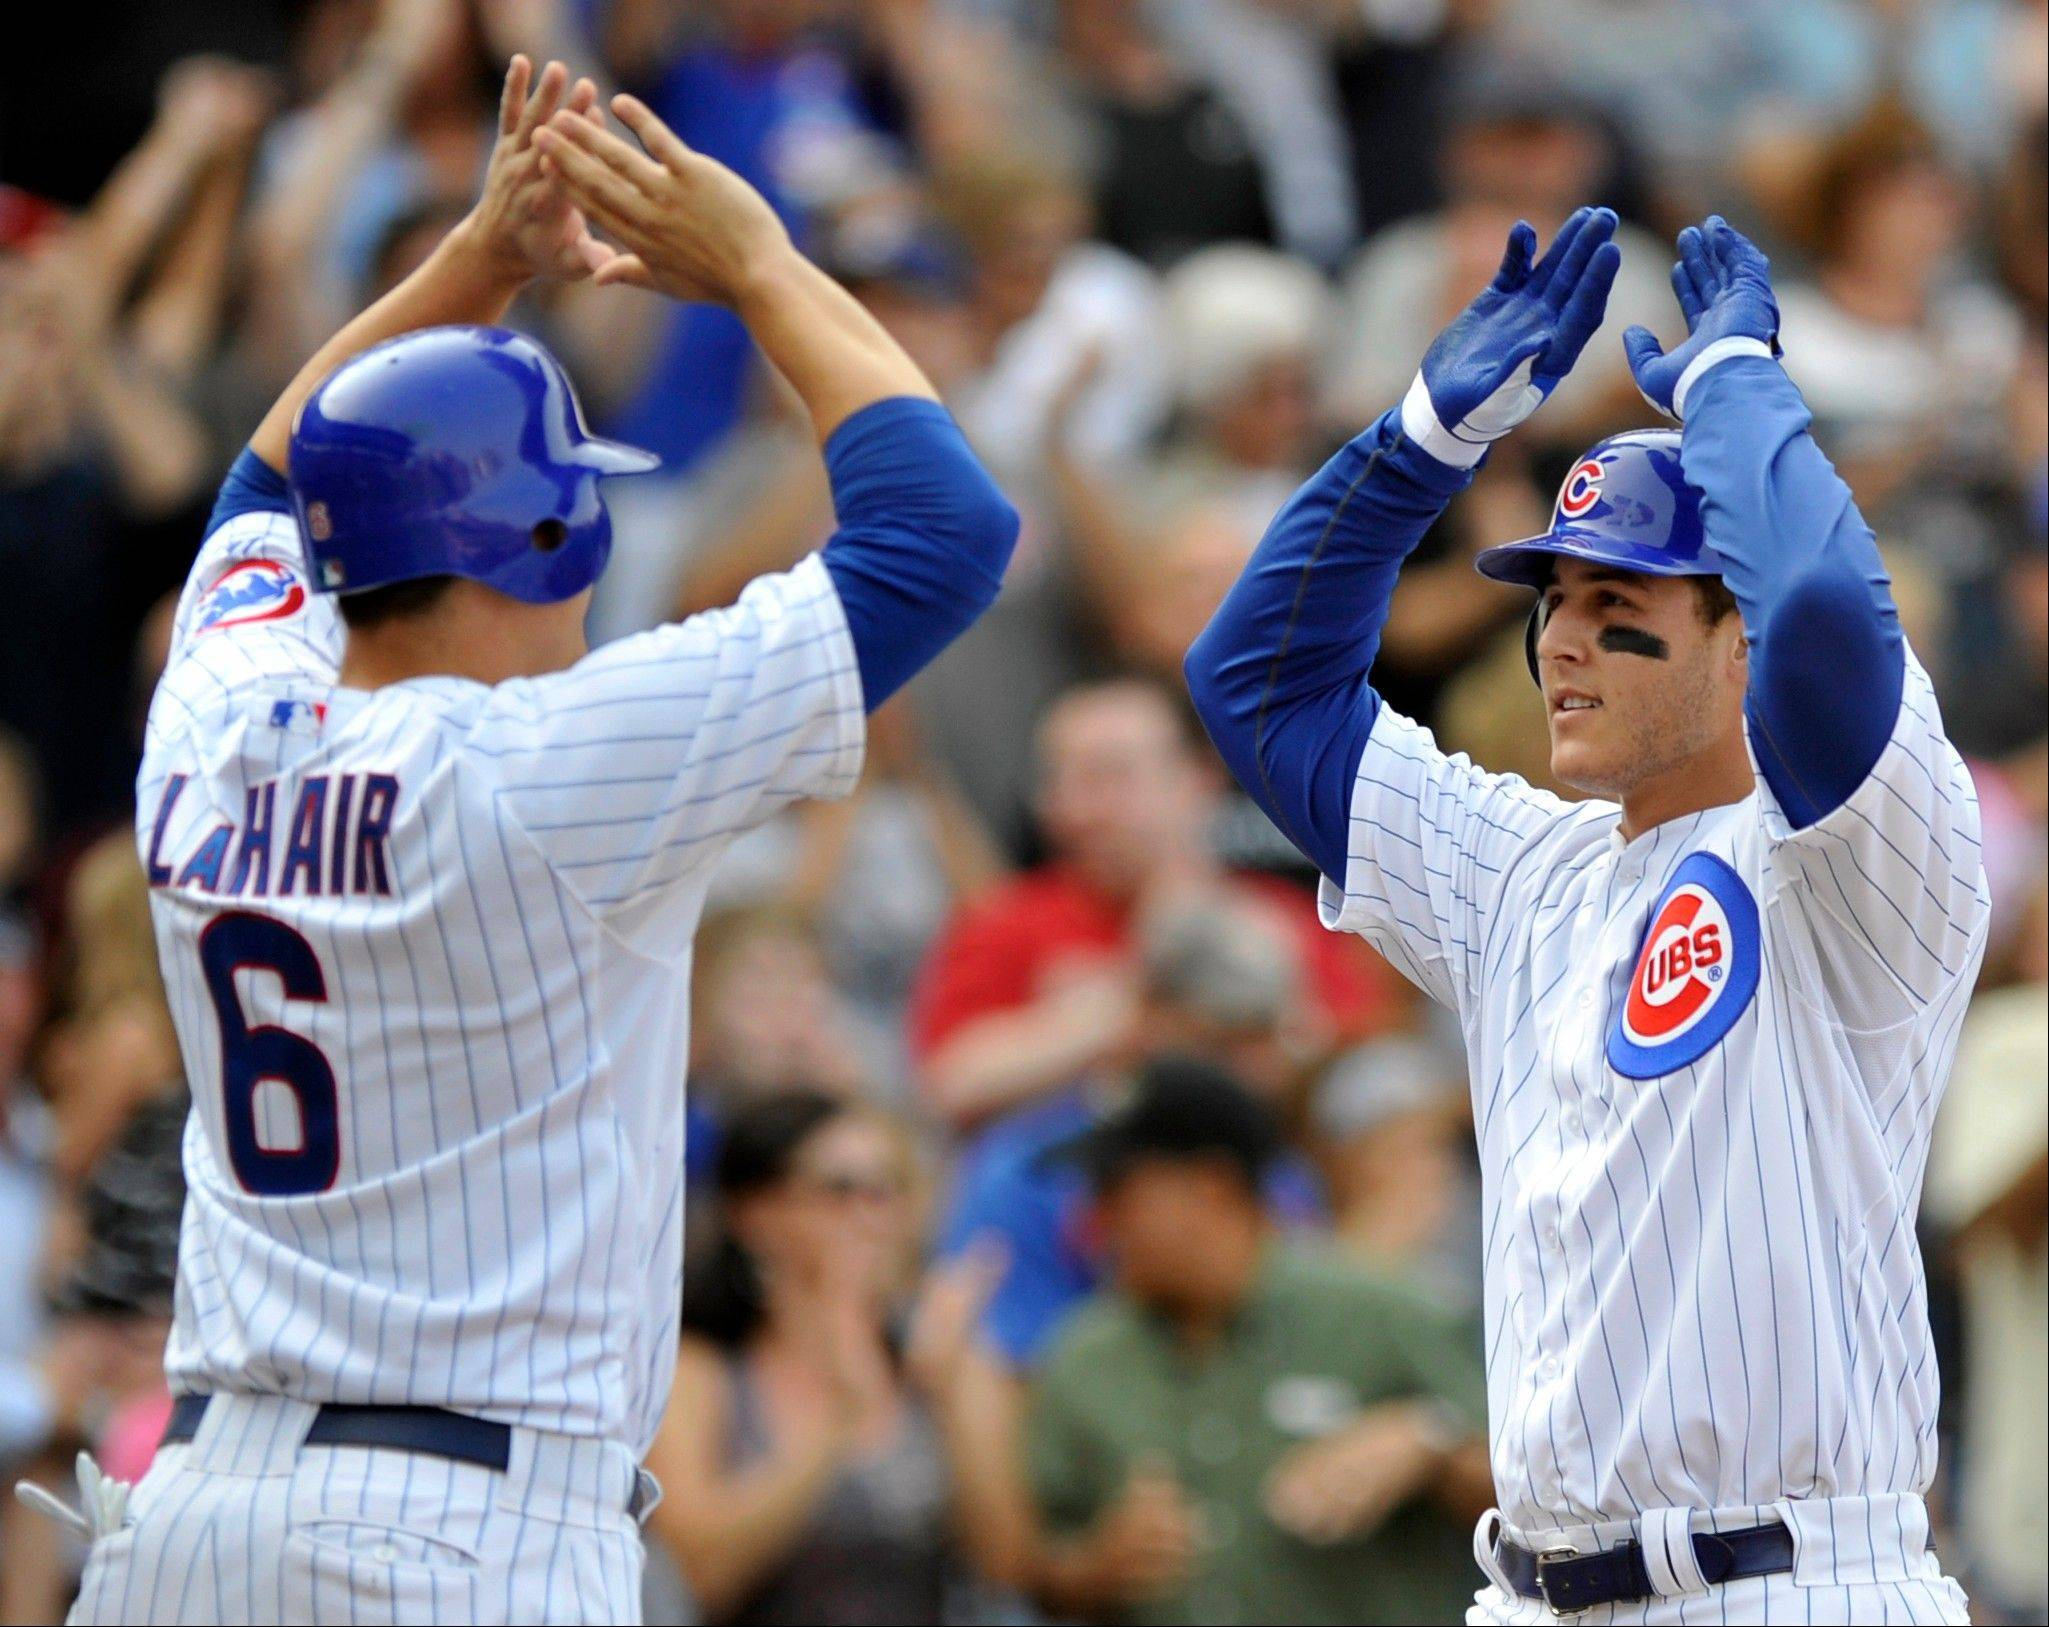 Powerfully successful day for Cubs' Rizzo